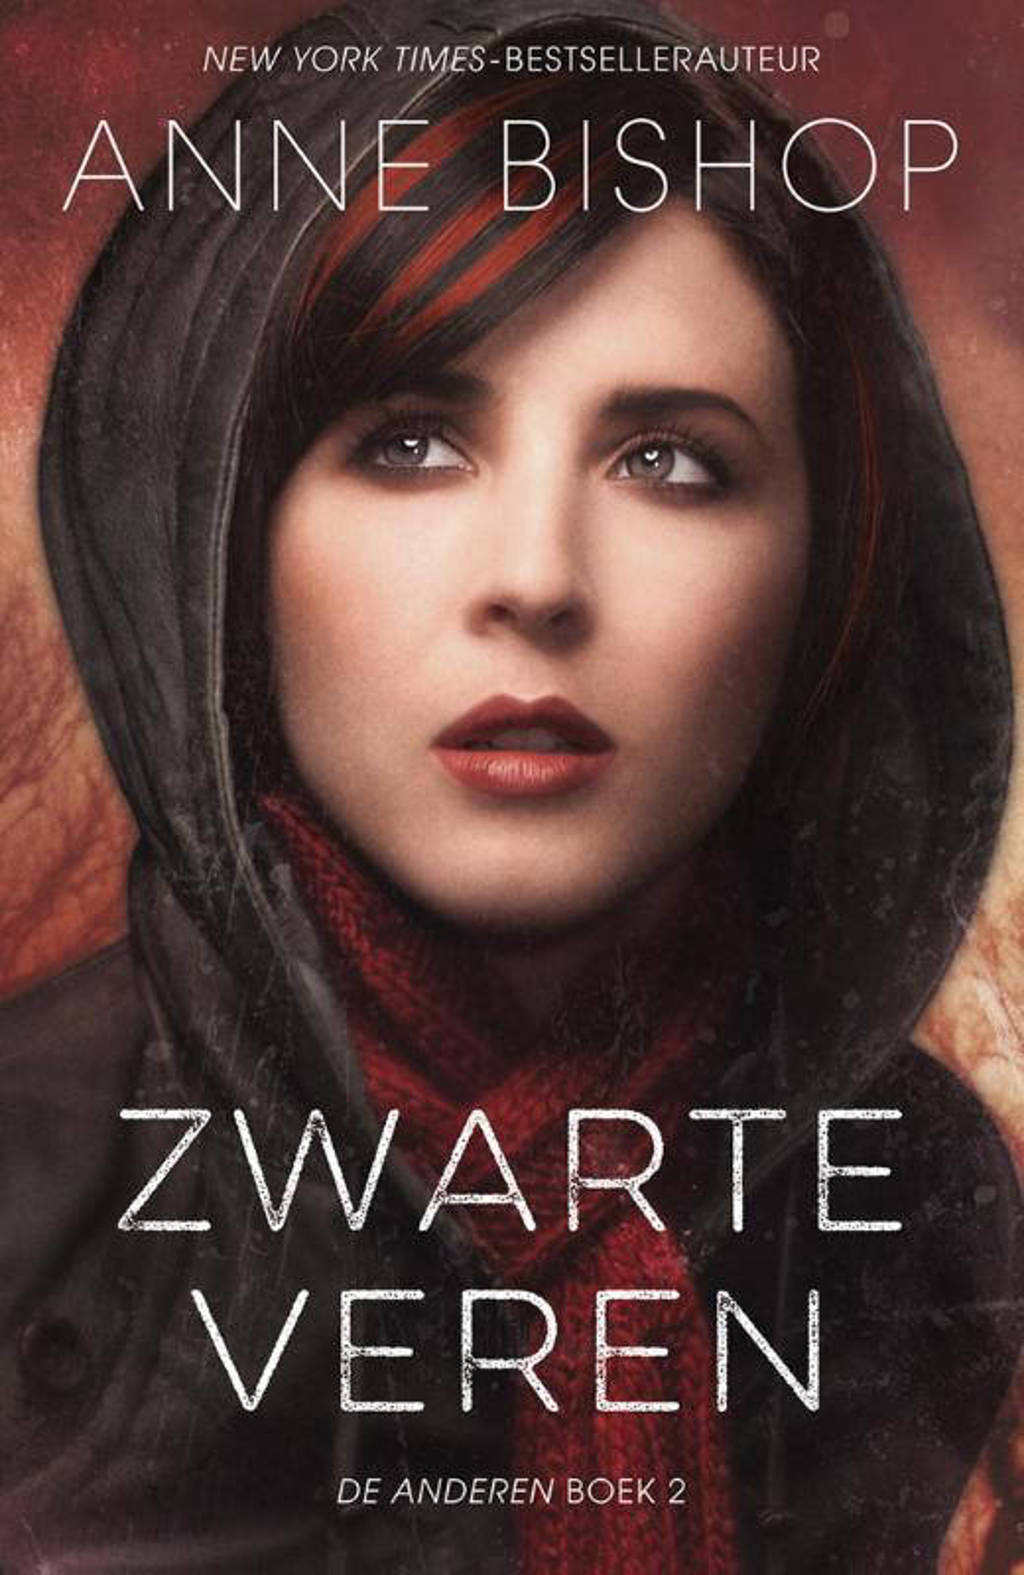 De Anderen: Zwarte veren - Anne Bishop